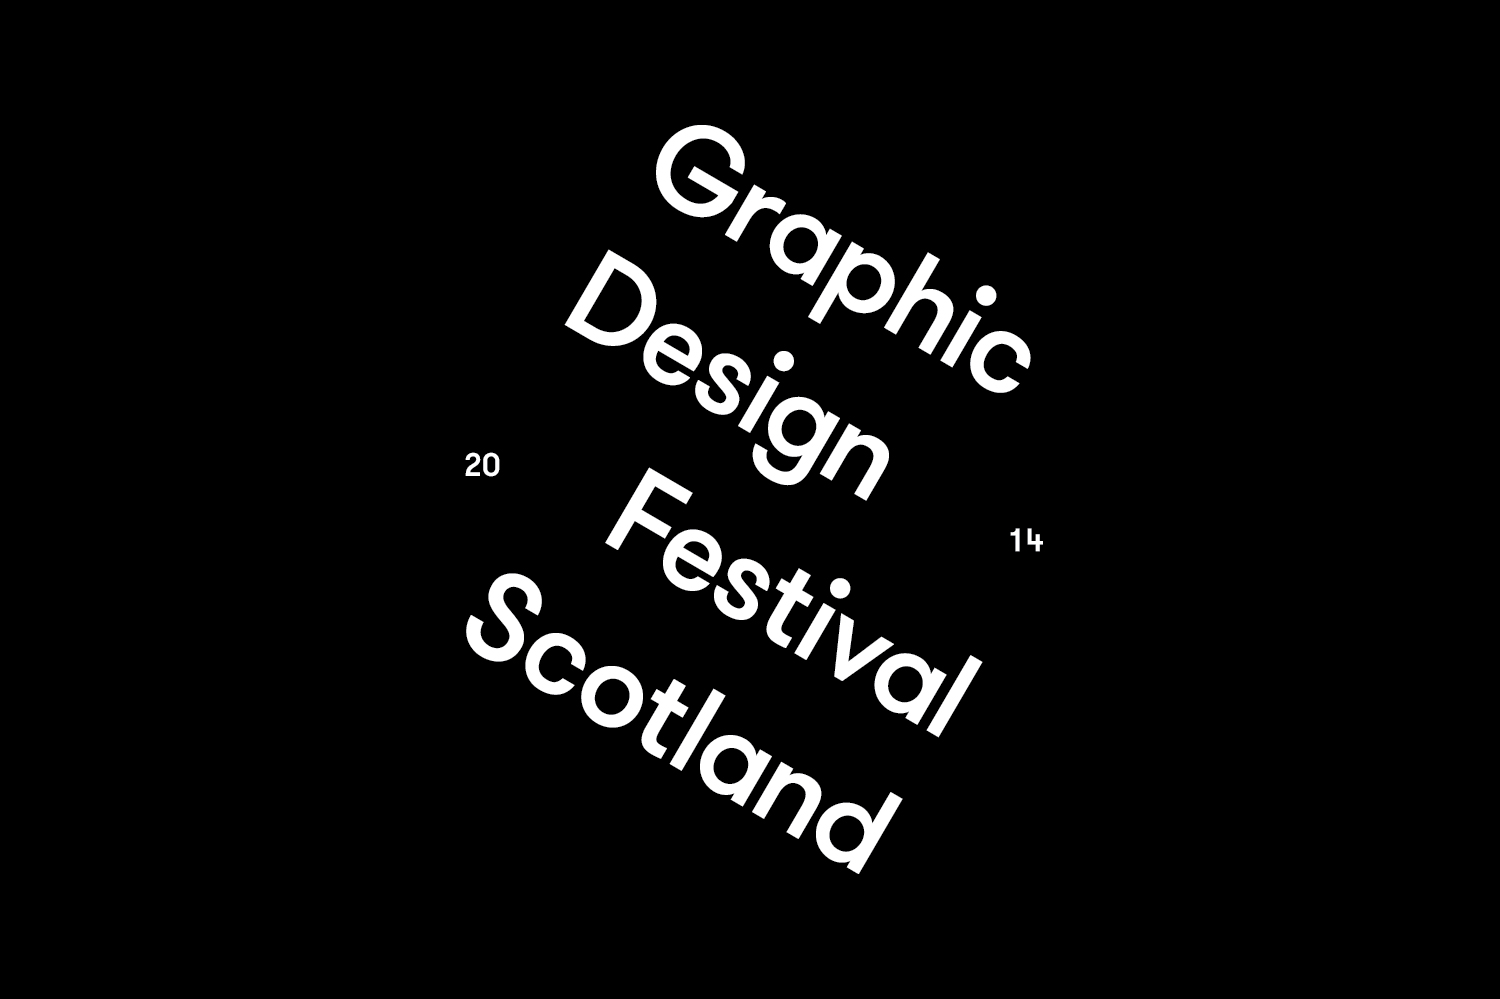 Graphic Design Festival Scotland Warriors  Studio Call for Creatives